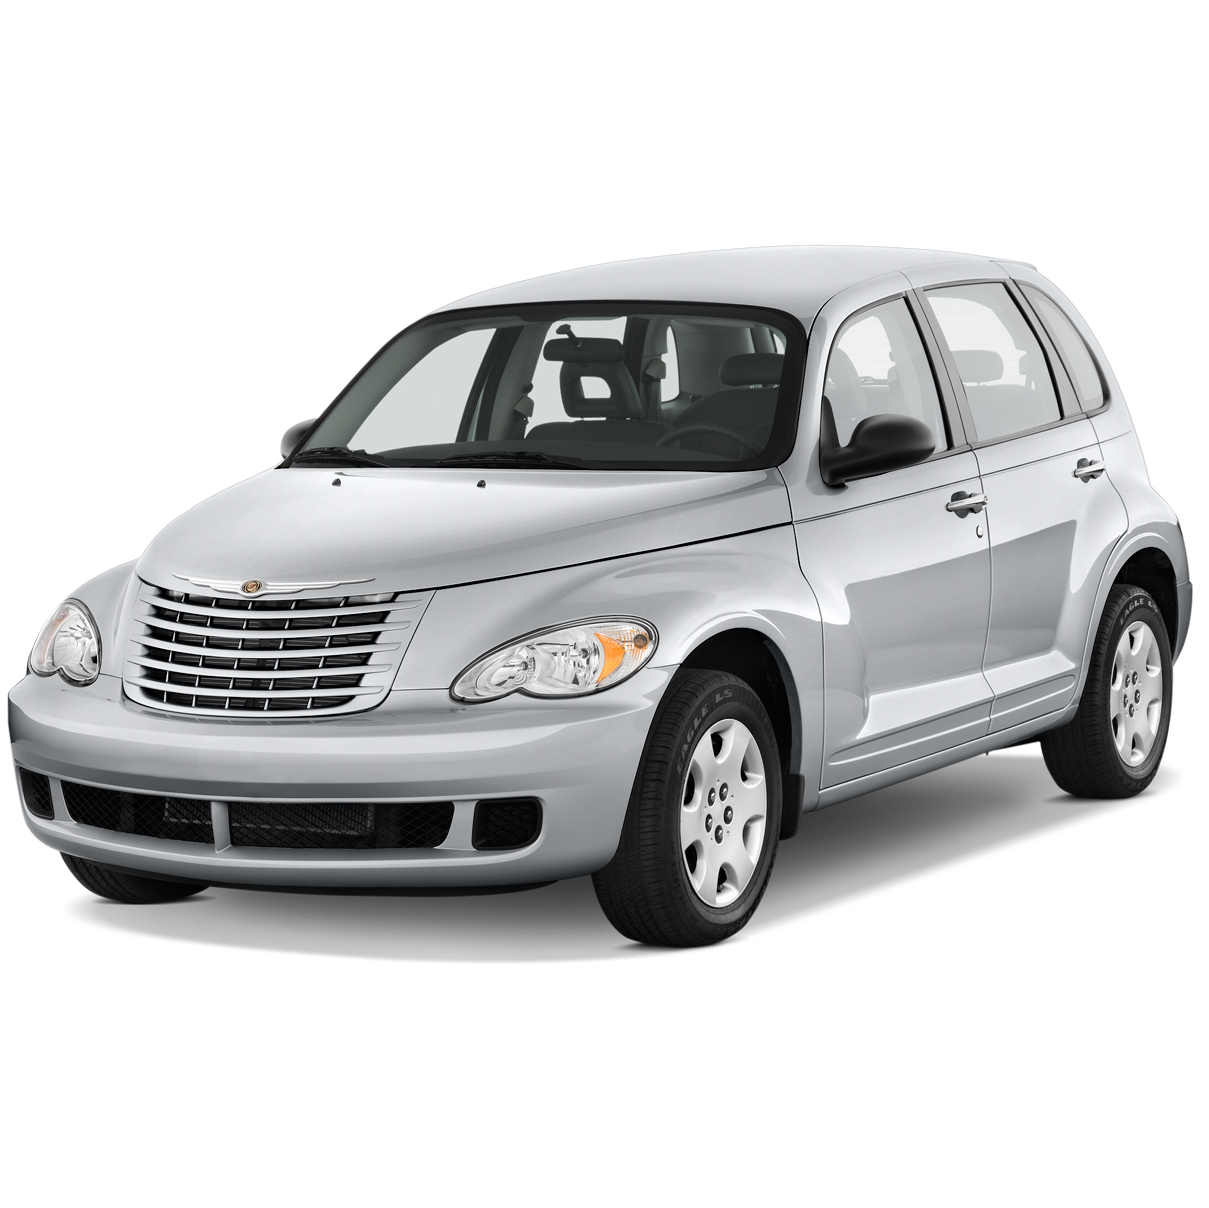 Chrysler PT Cruiser 2000 Onwards